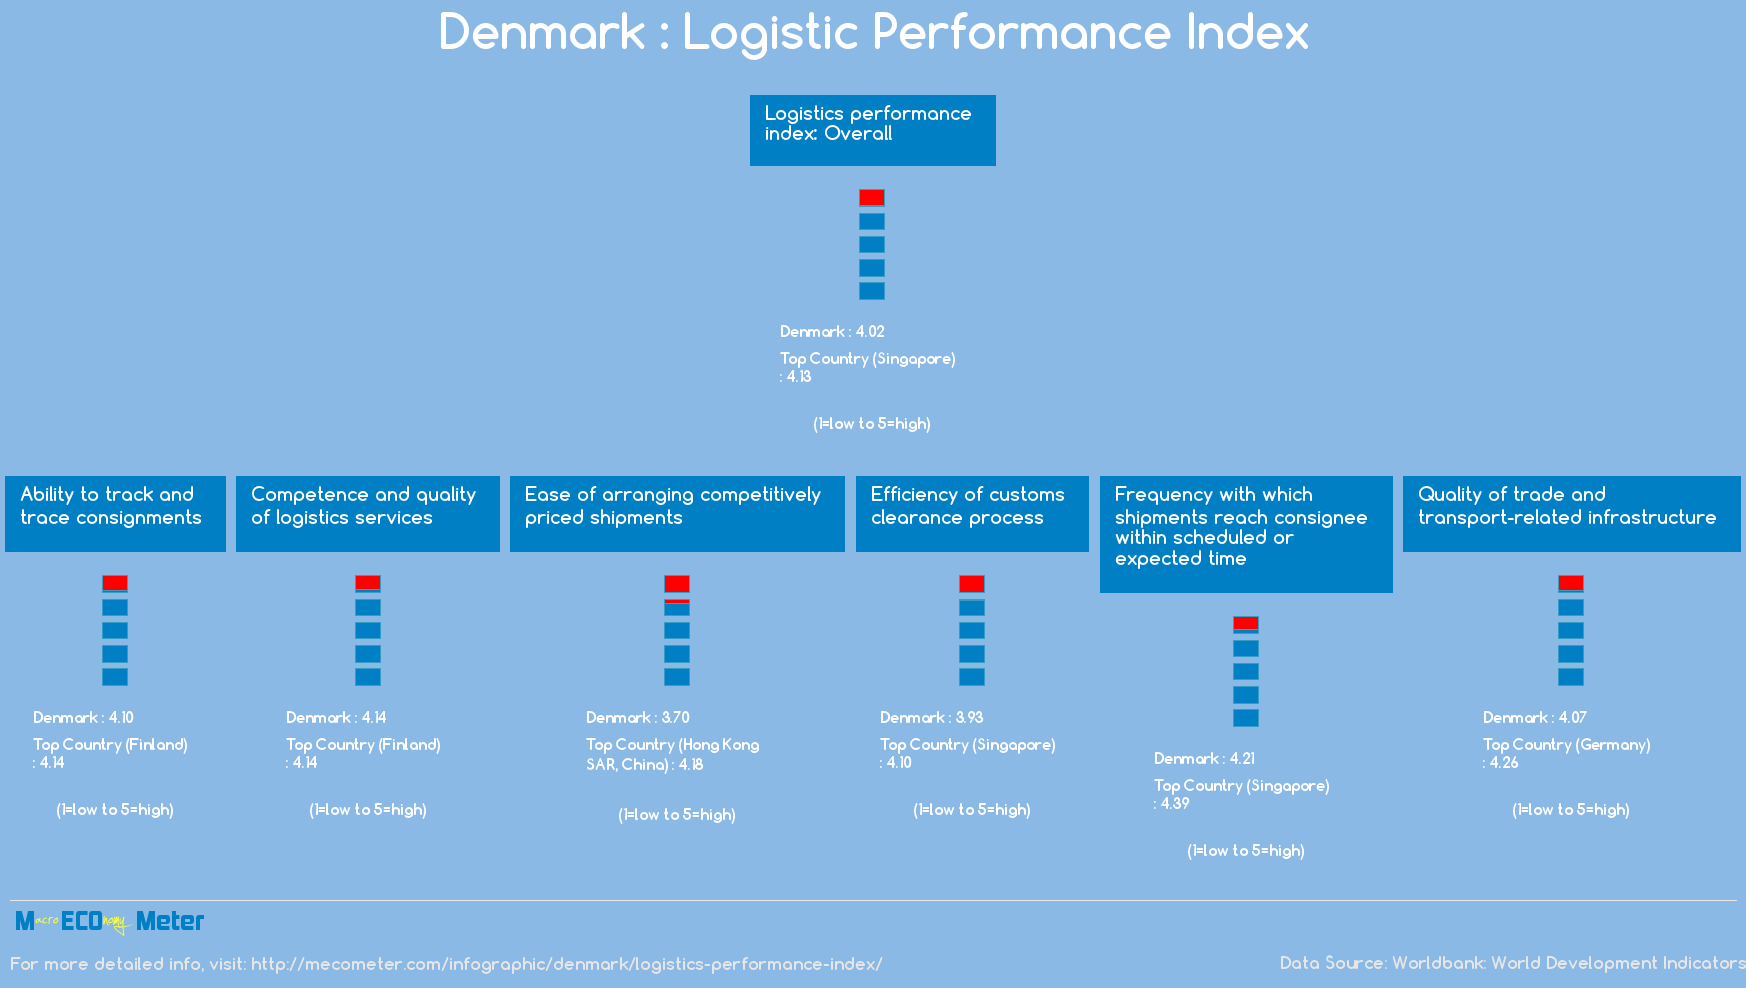 Denmark : Logistic Performance Index